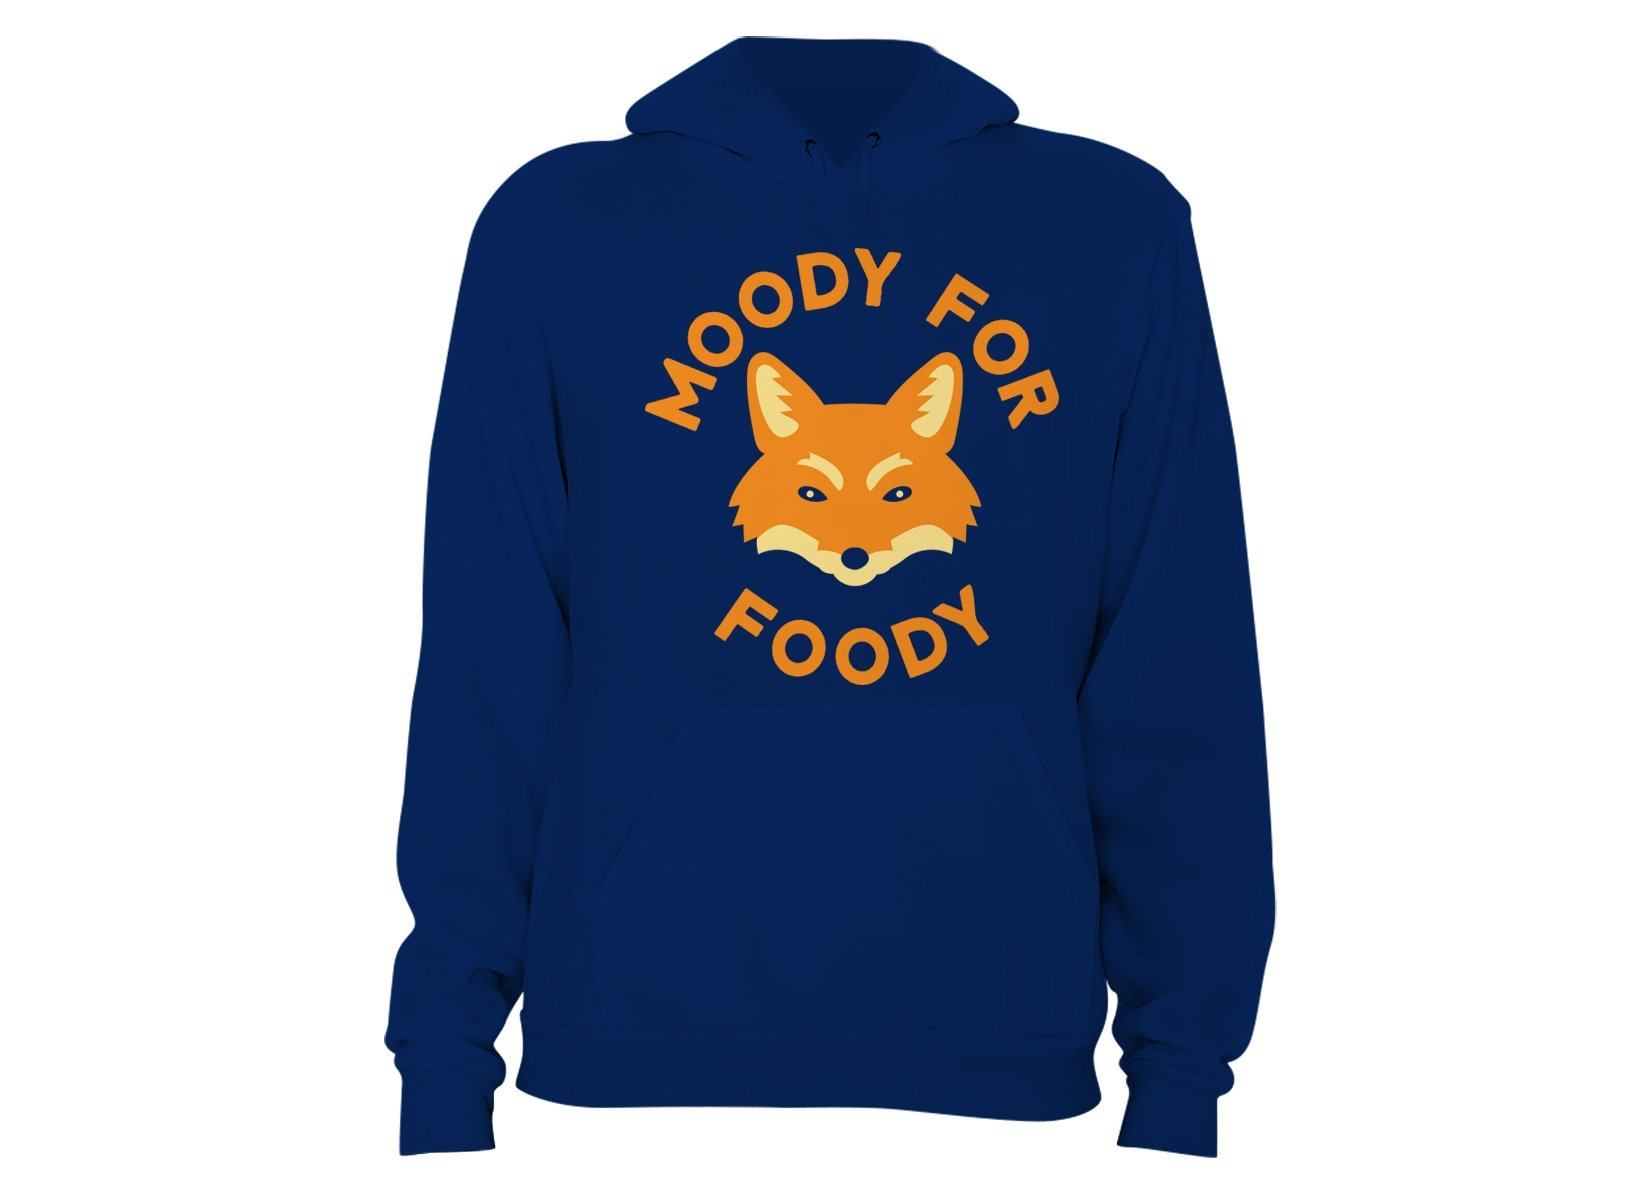 Moody For Foody on Hoodie